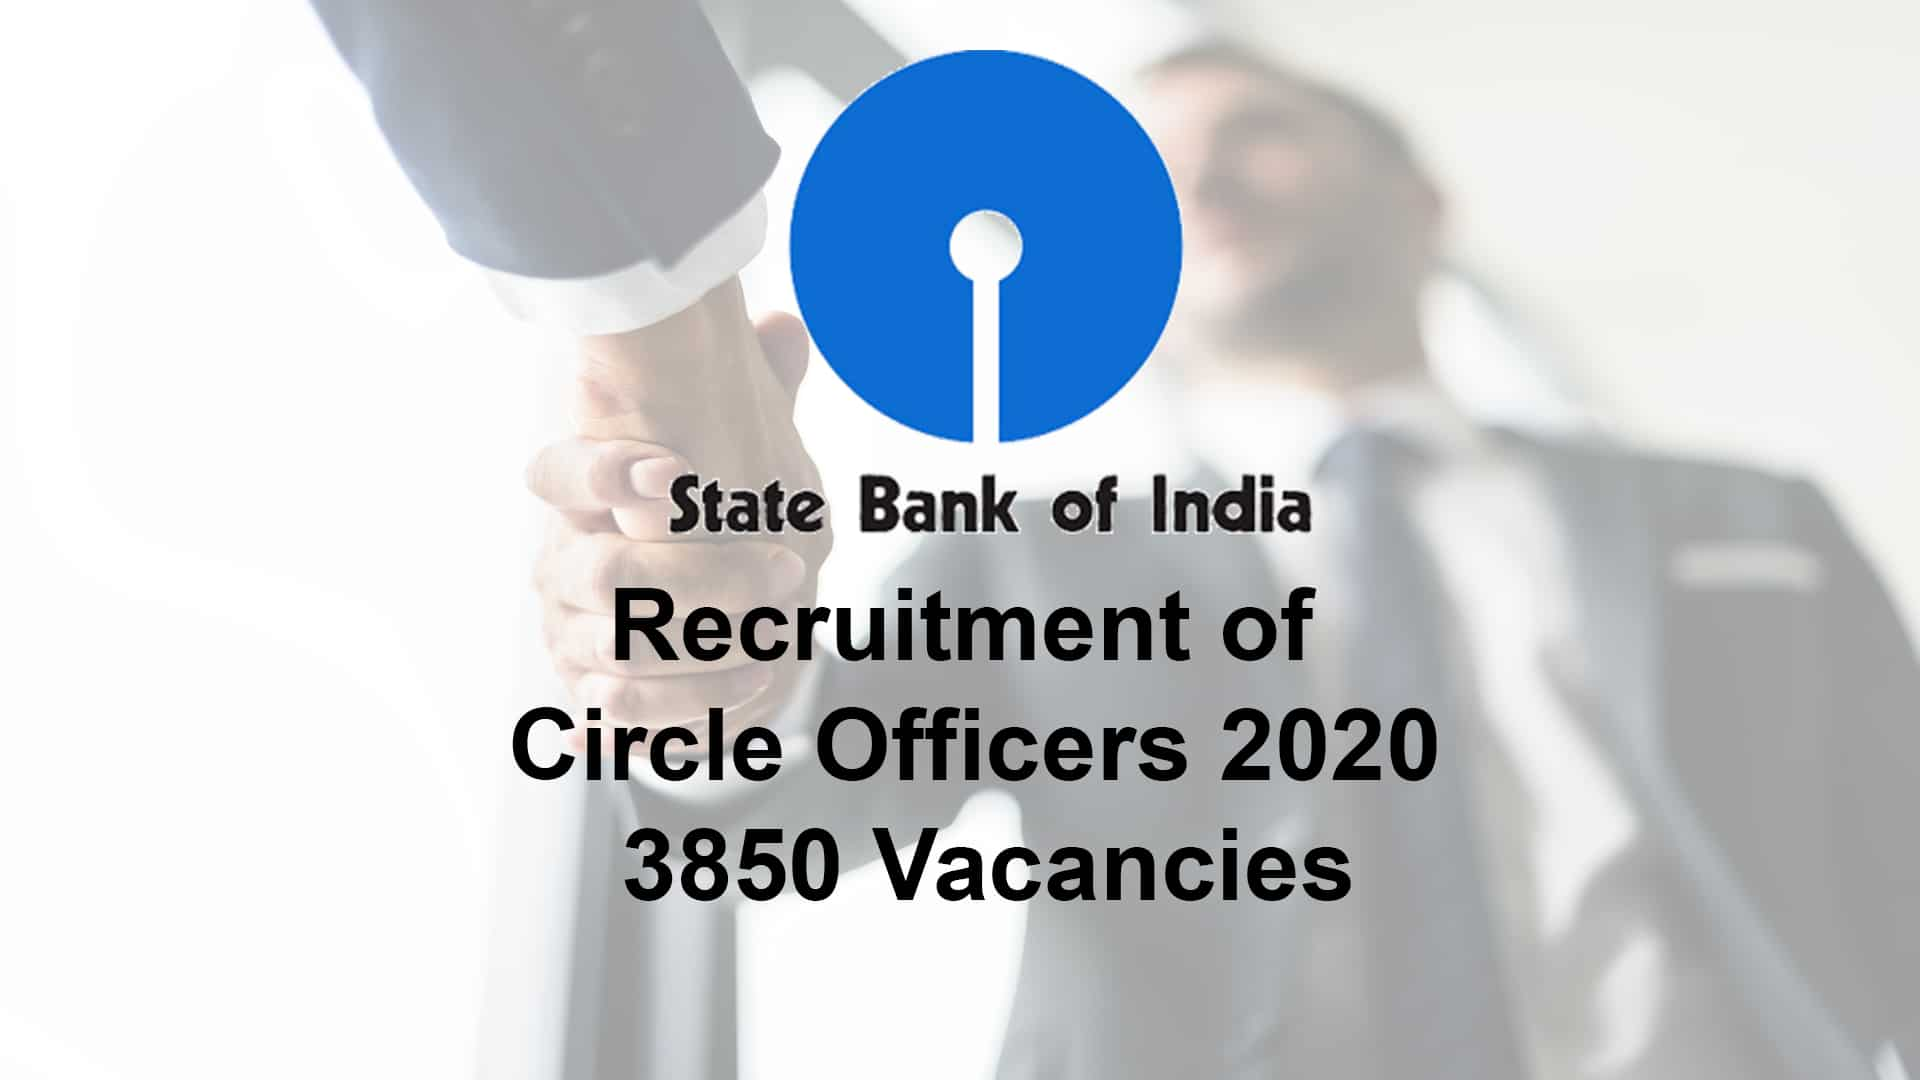 SBI Recruitment of Circle Officers